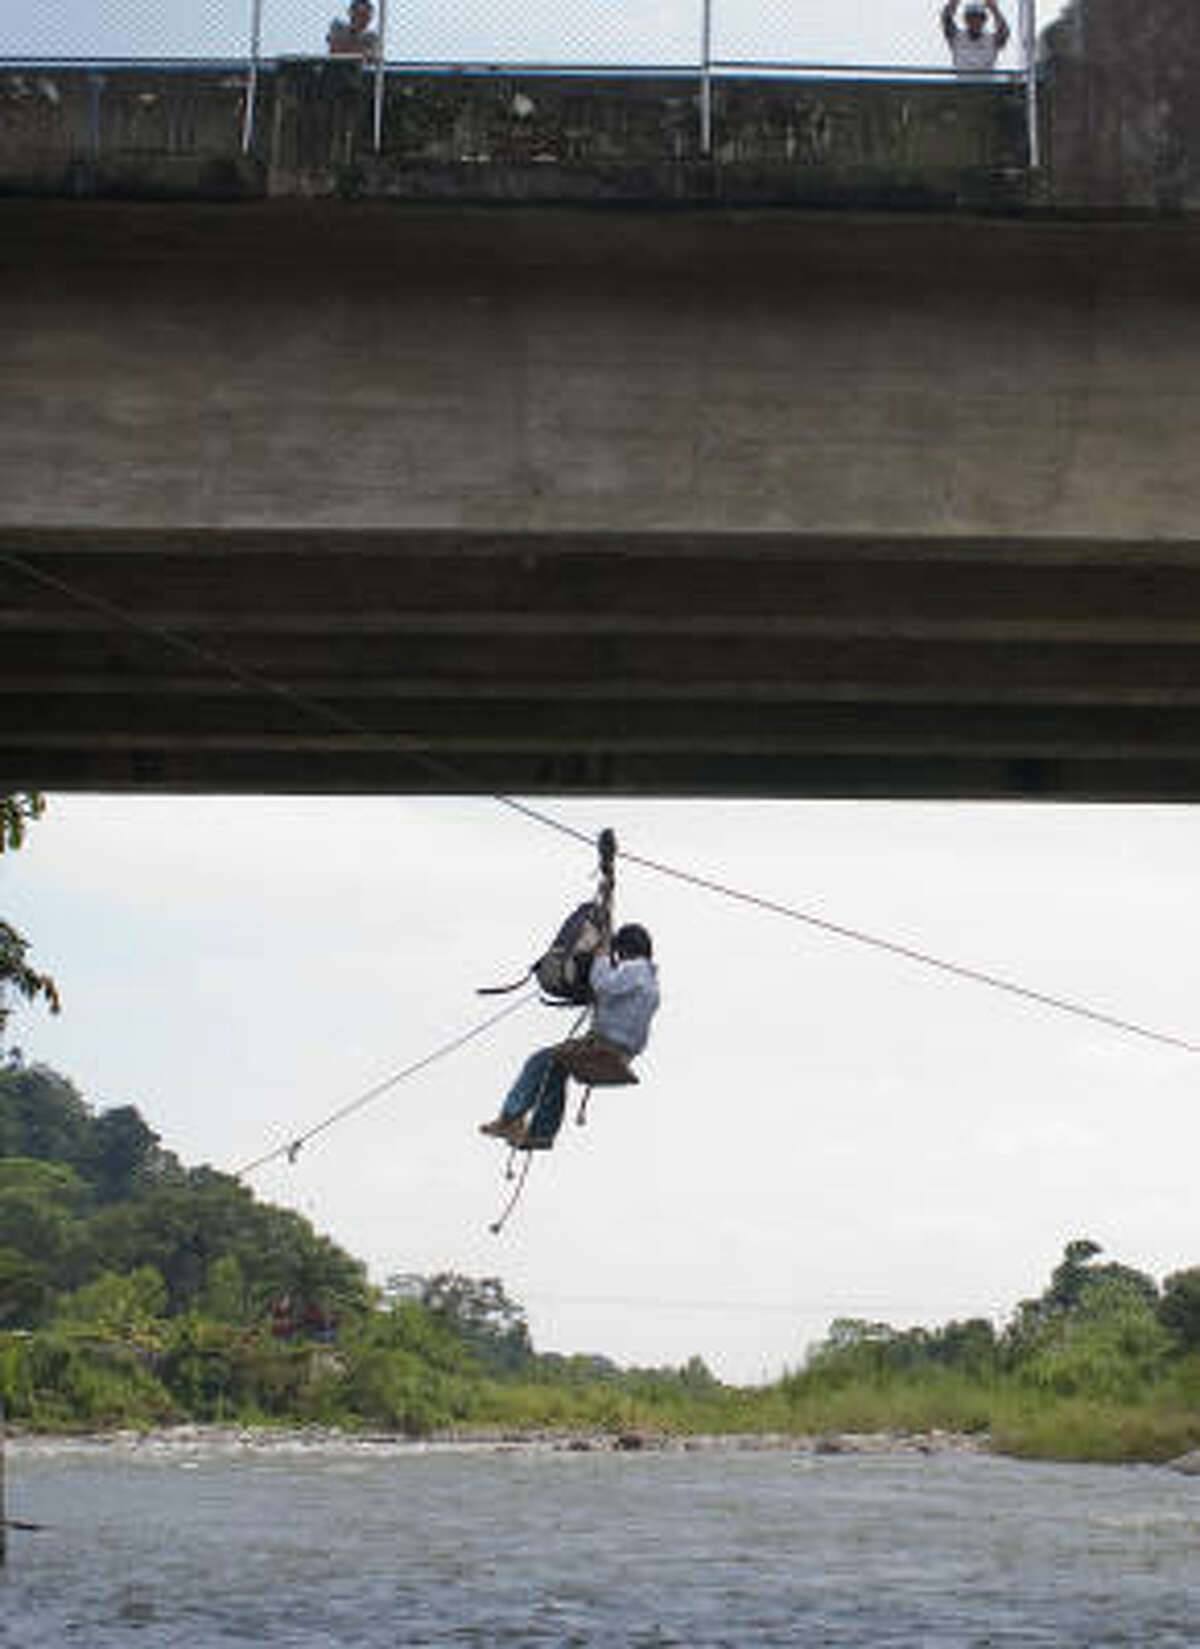 It's a zip for some migrants to cross from Guatemala to Mexico. After the rope ride under the international bridge and over the Suchiate River, though, far greater perils await.